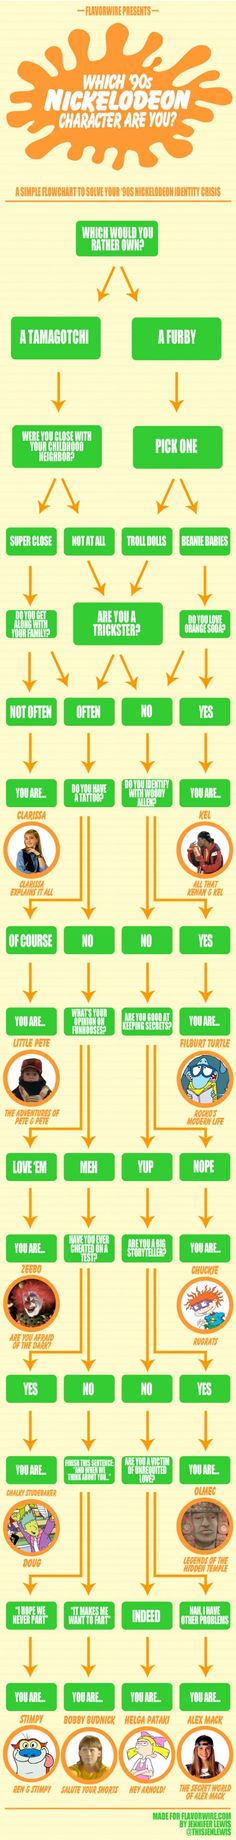 Which #90s Nickelodeon character are you? I'm totally Clarissa.